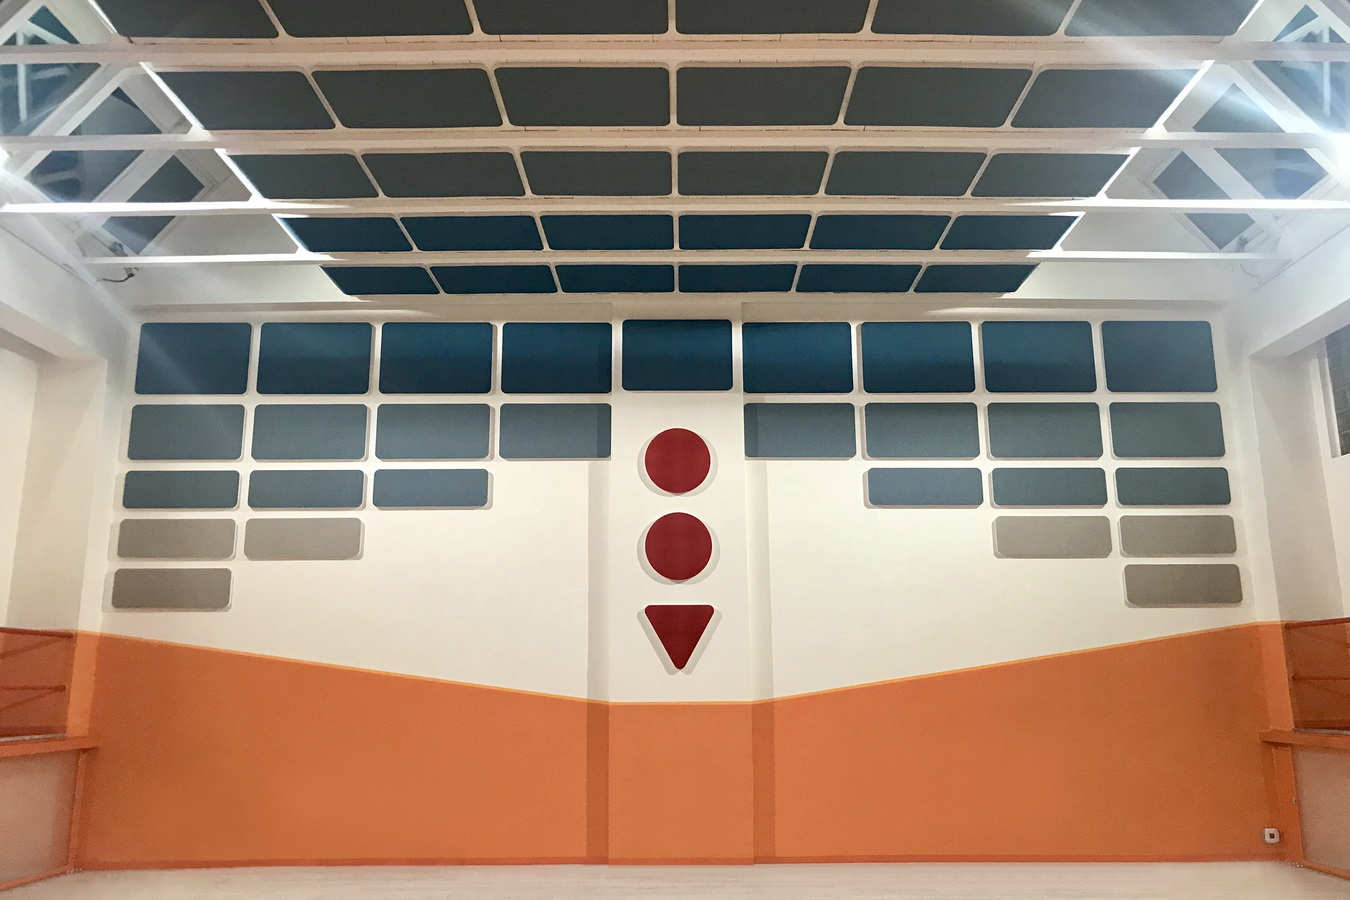 Reverb-control-in-school-gyms-sound-absorbing-panels